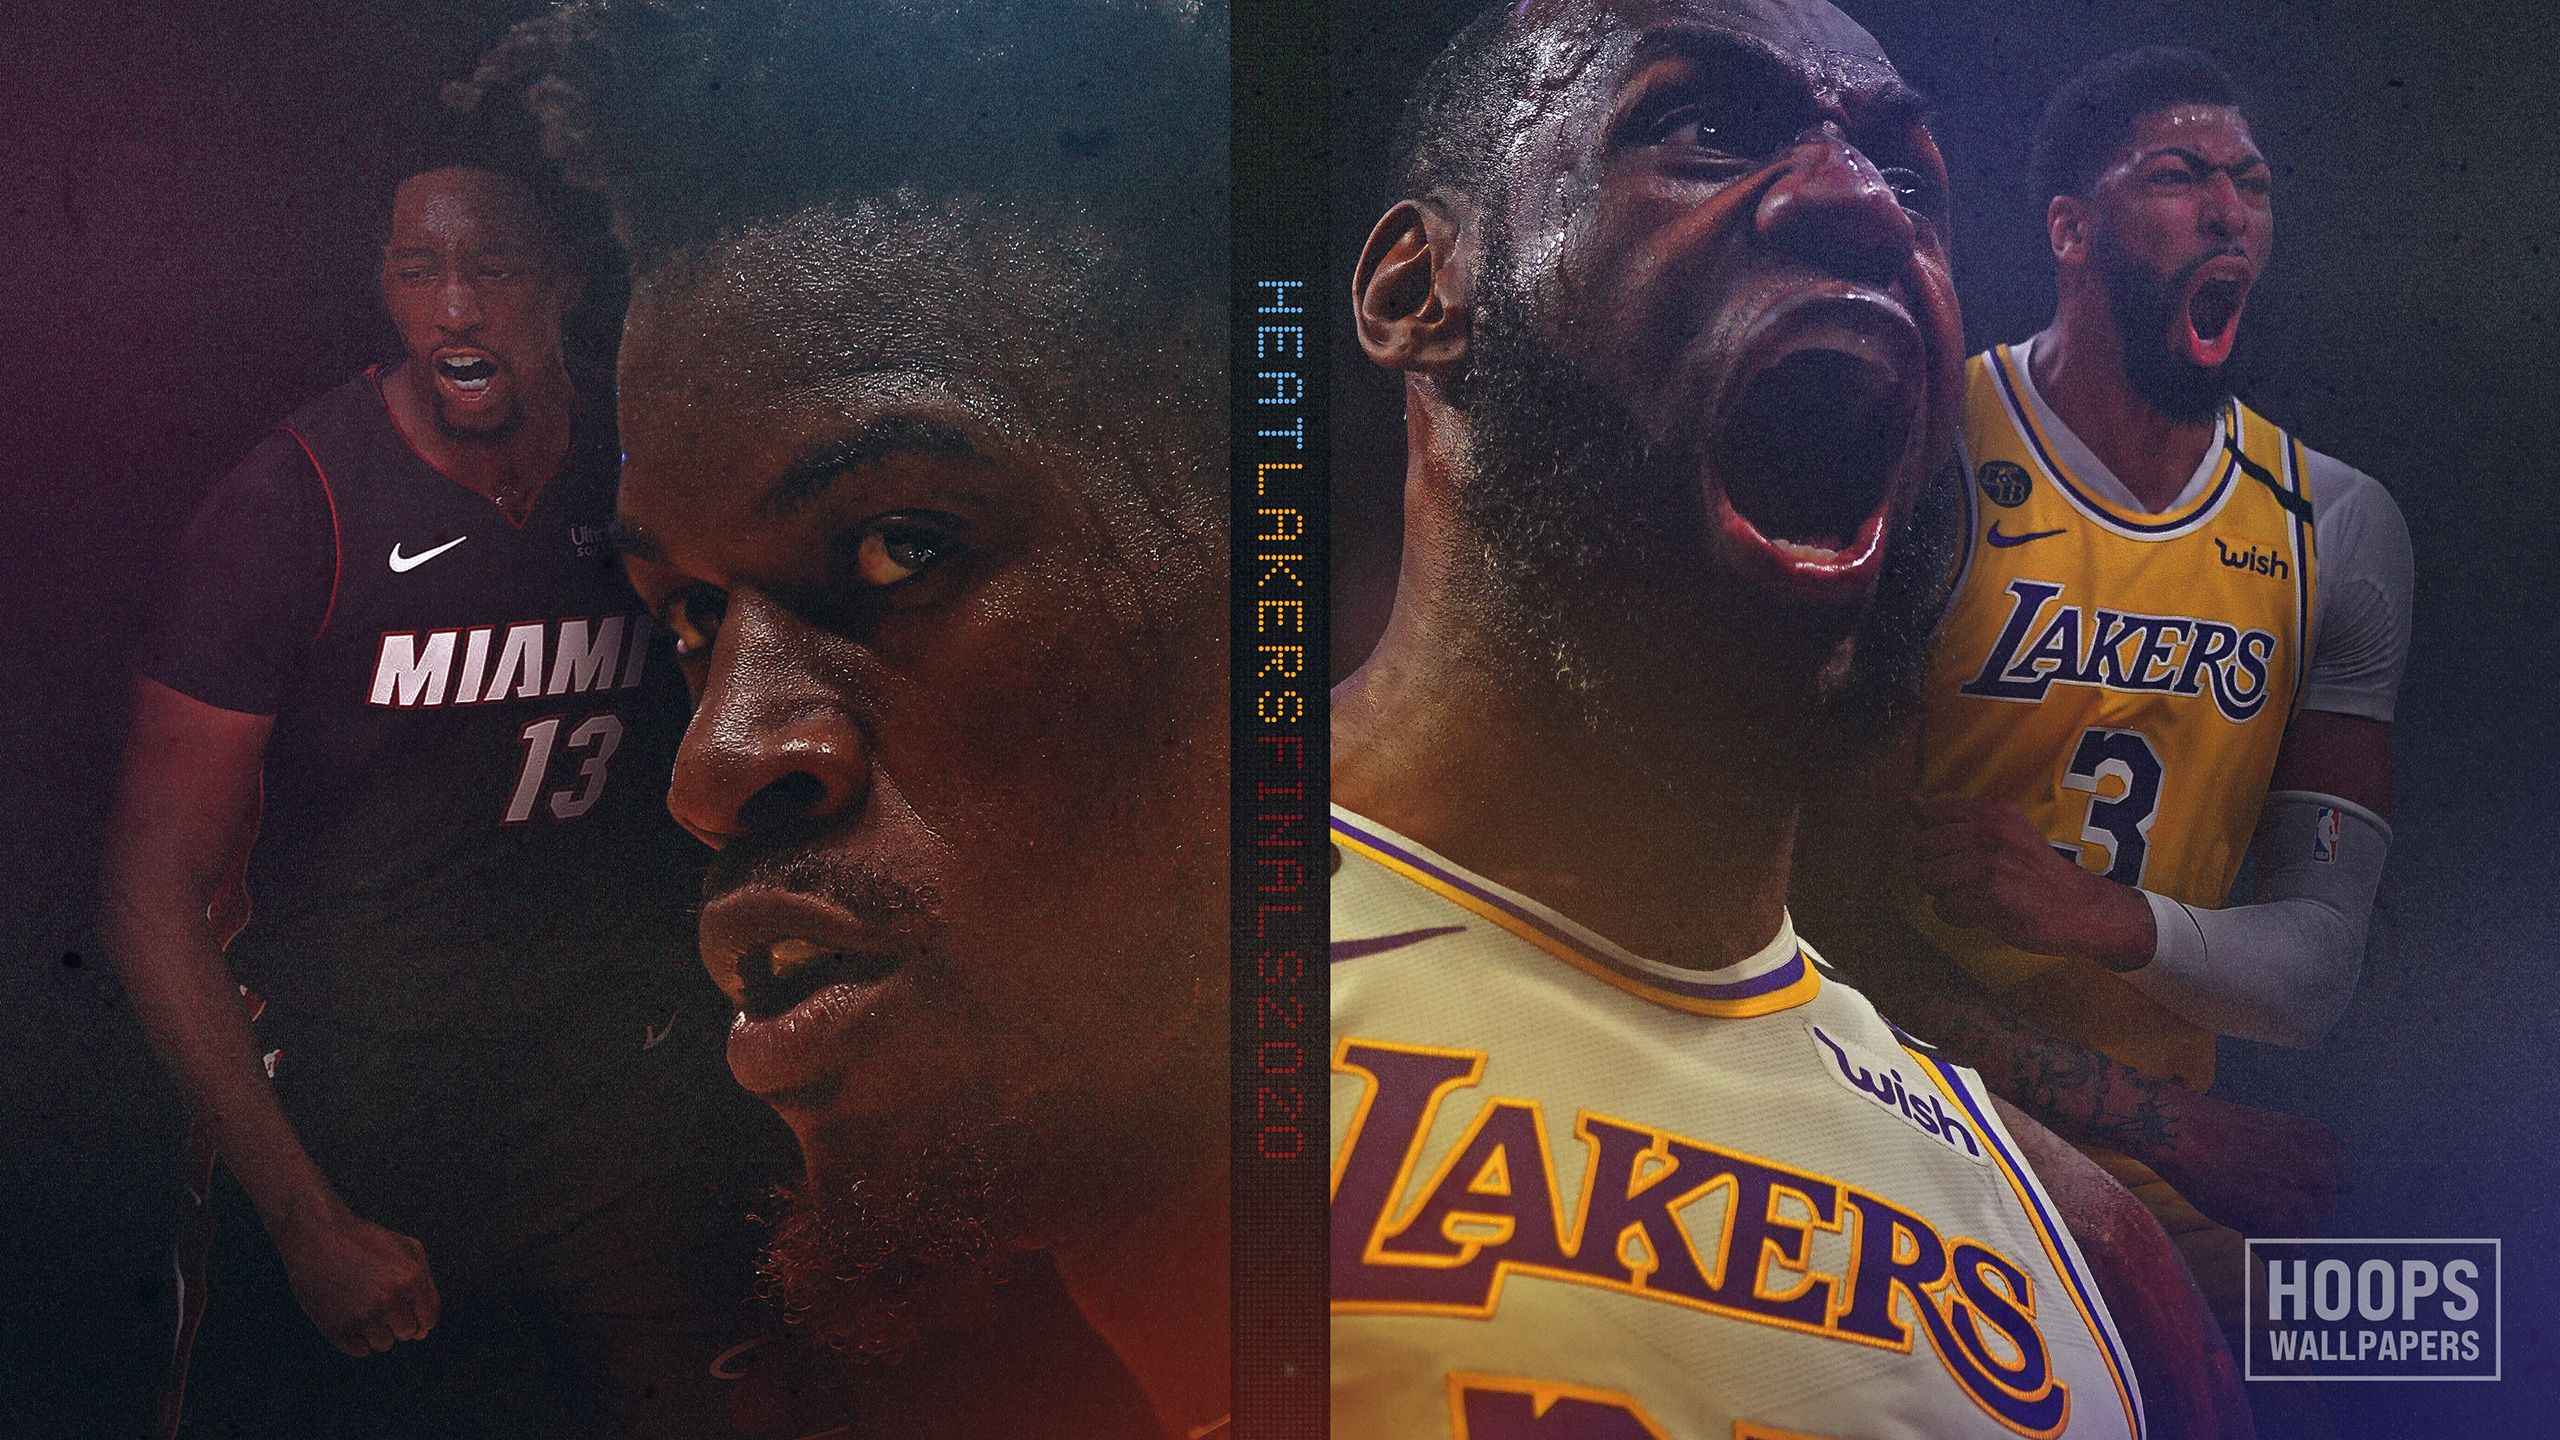 Hoopswallpapers Com Get The Latest Hd And Mobile Nba Wallpapers Today Blog Archive New 2020 Nba Finals Wallpaper Heat Vs Lakers